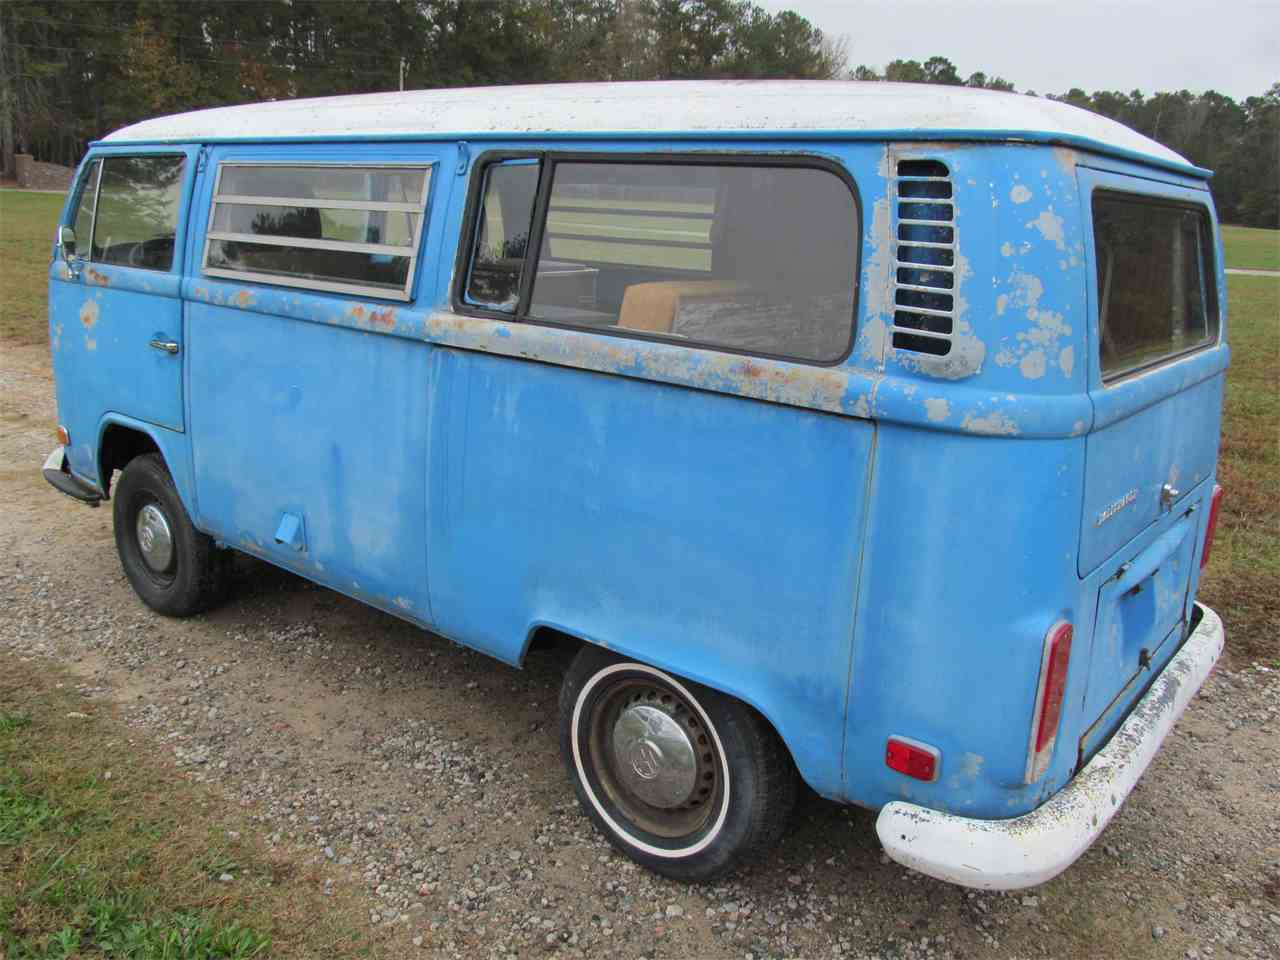 Large Picture of '72 Volkswagen Bus located in Fayetteville Georgia - $8,900.00 - MAIP